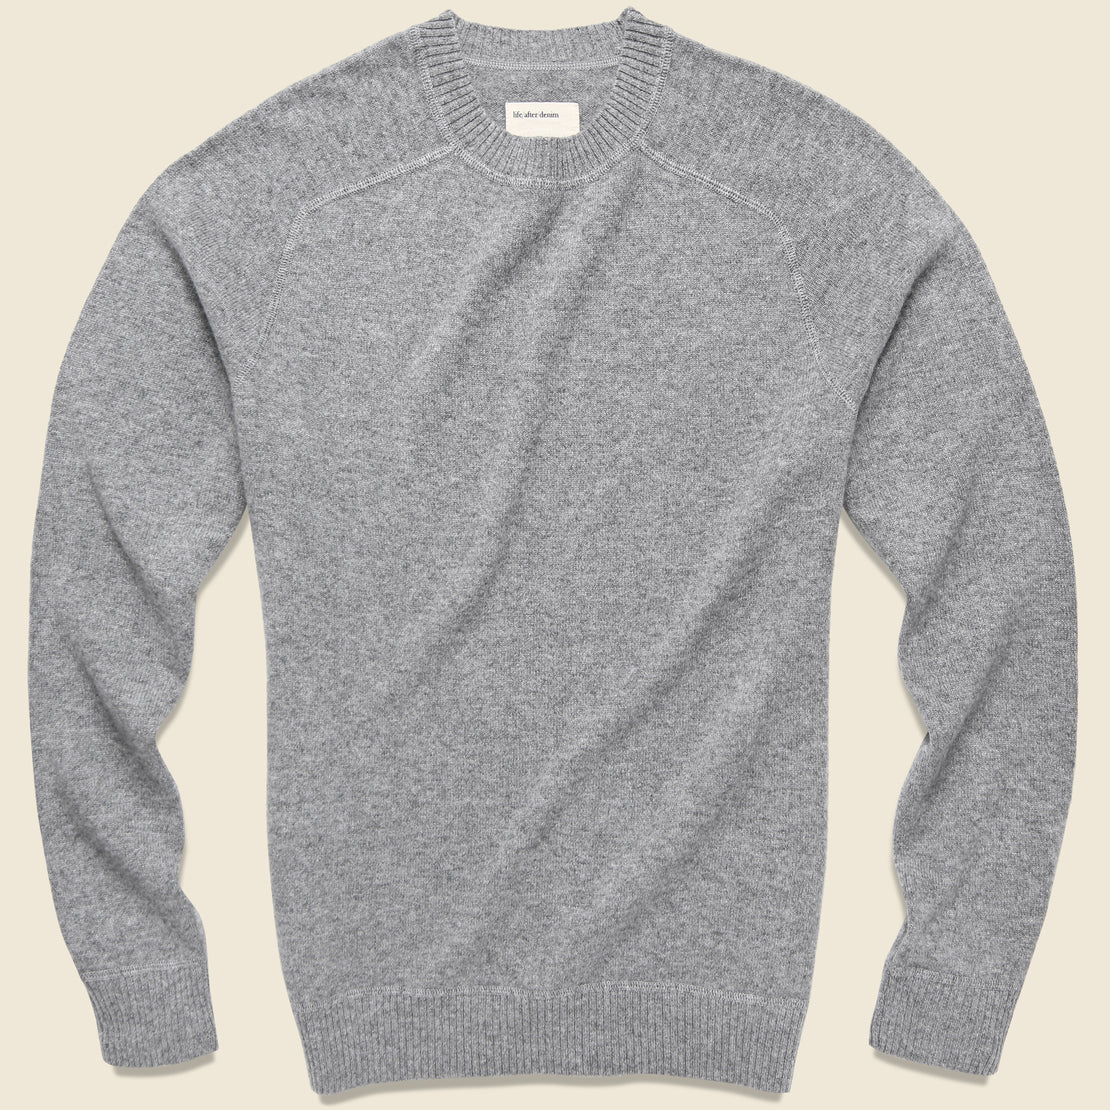 Life After Denim Columbia Cashmere Sweater - Heather Grey